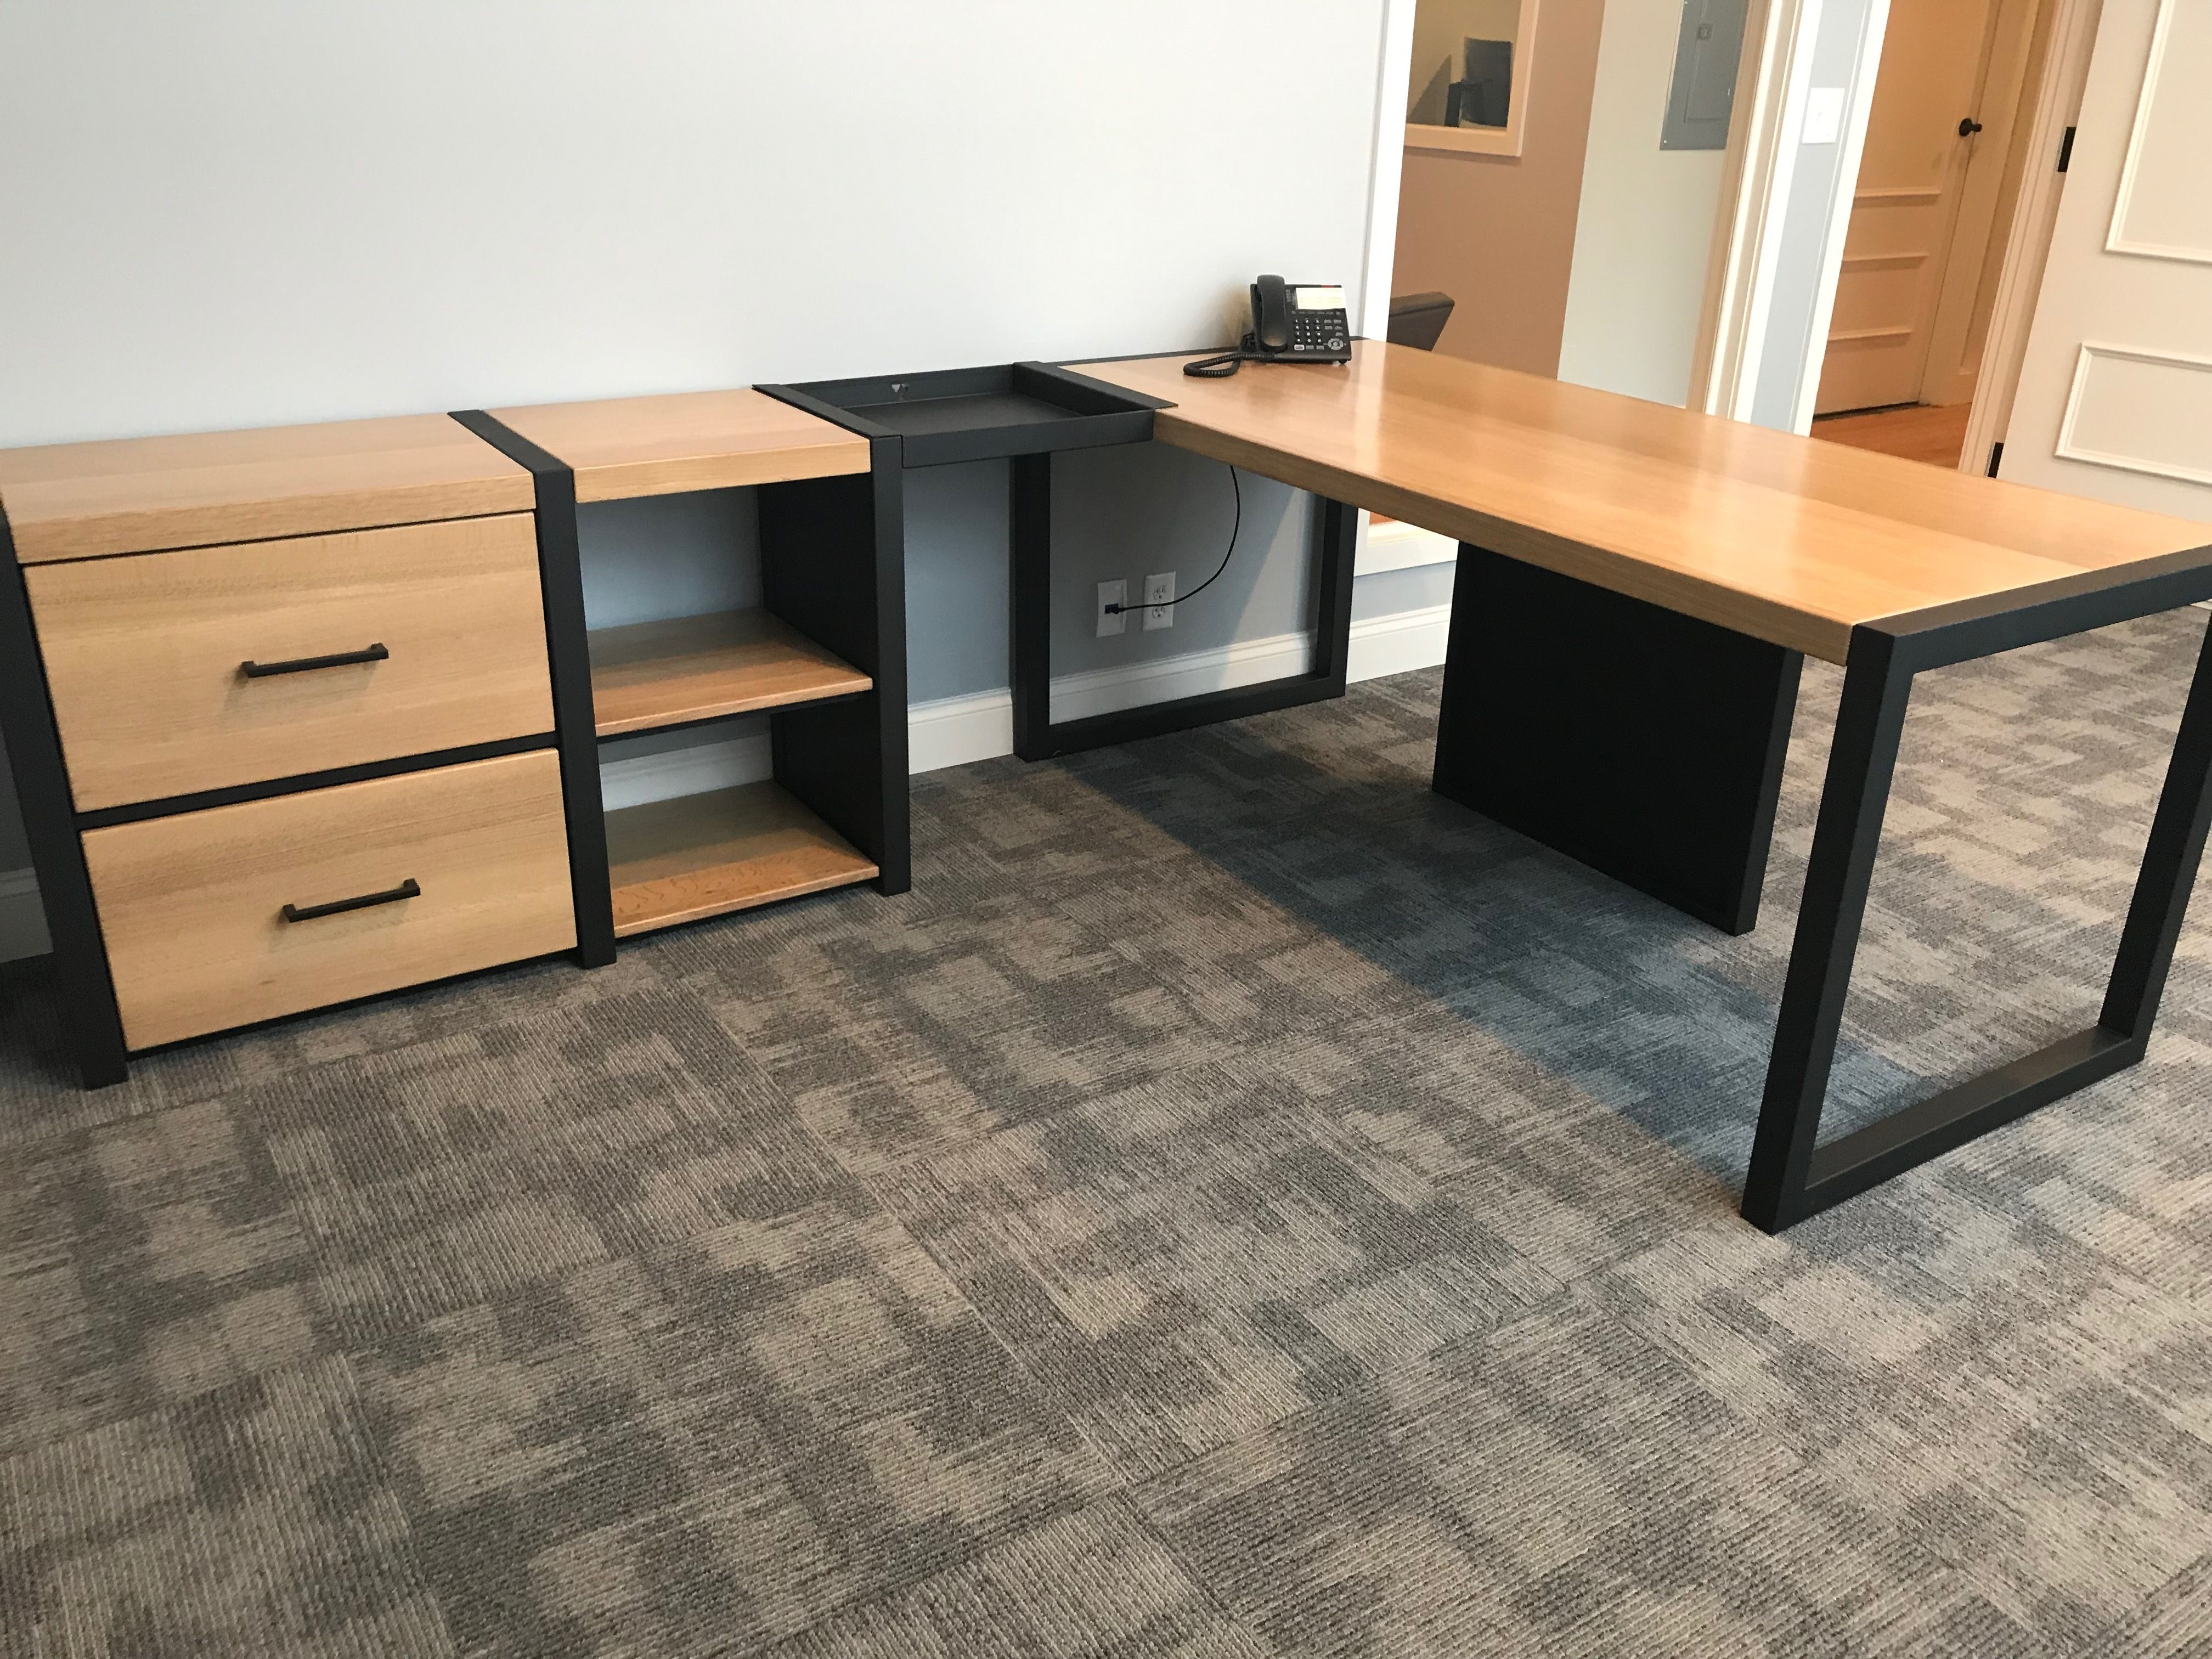 Hand Crafted Modern Desk And Storage For The Professional by Weld